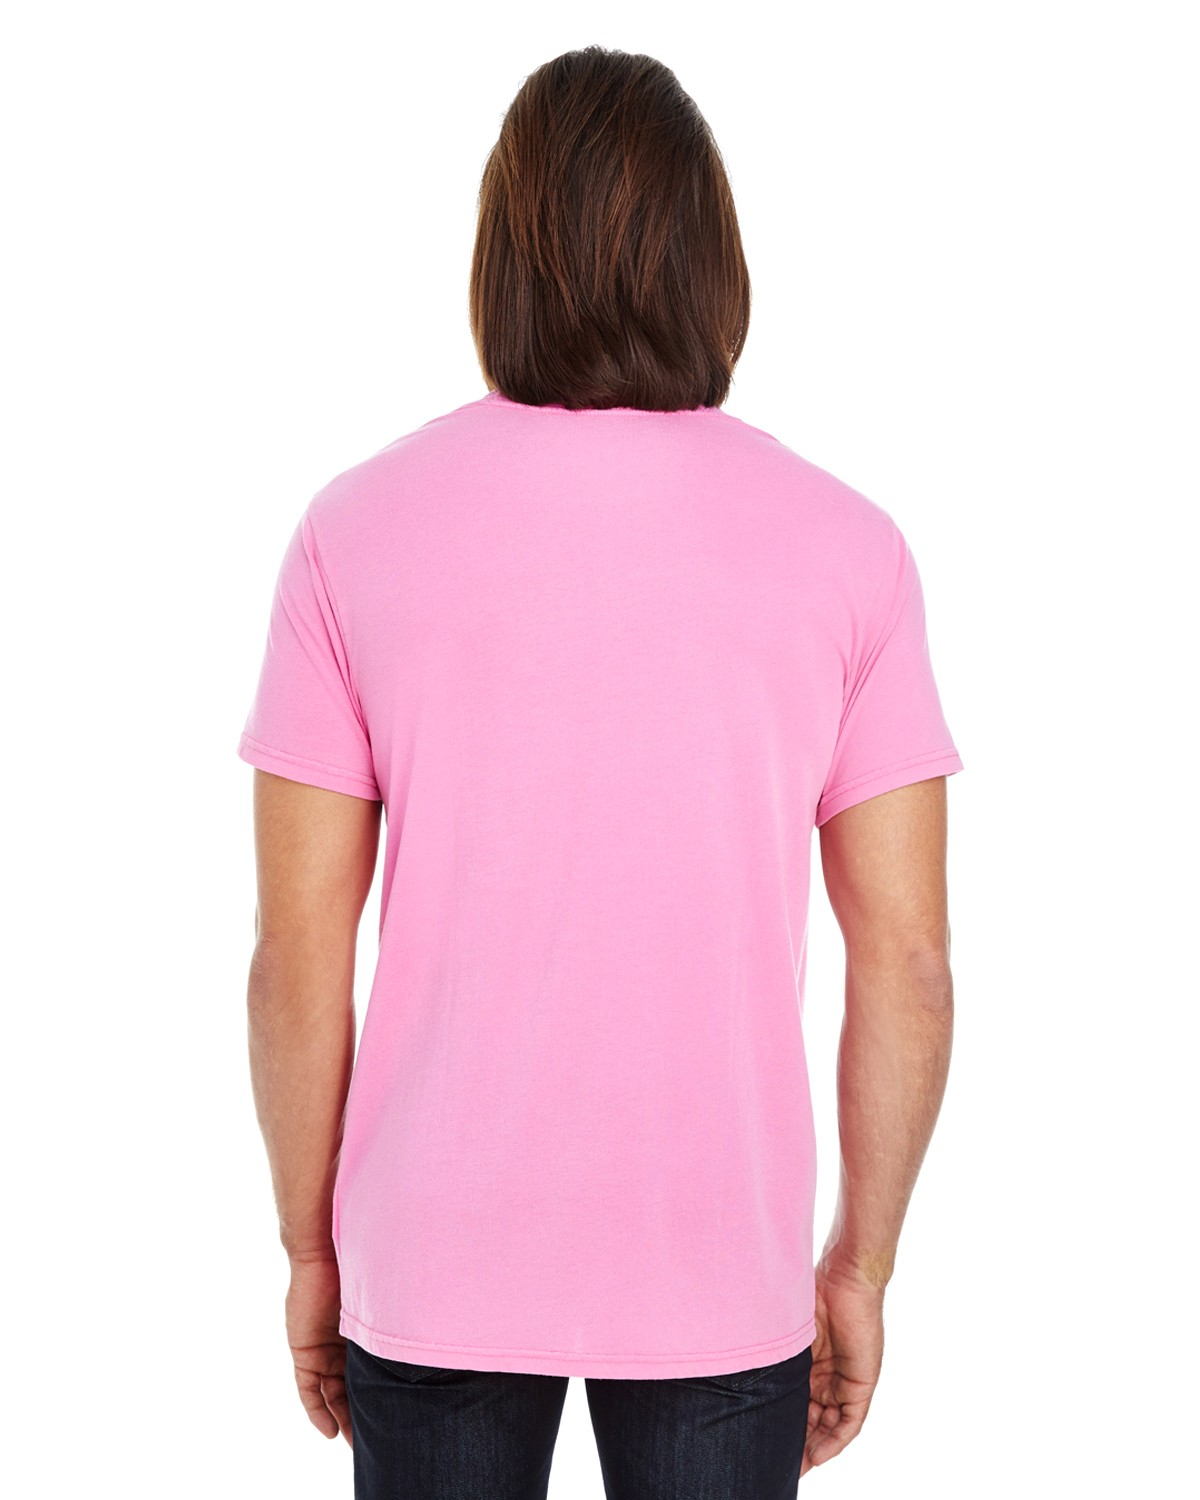 130A Threadfast Apparel CHARITY PINK